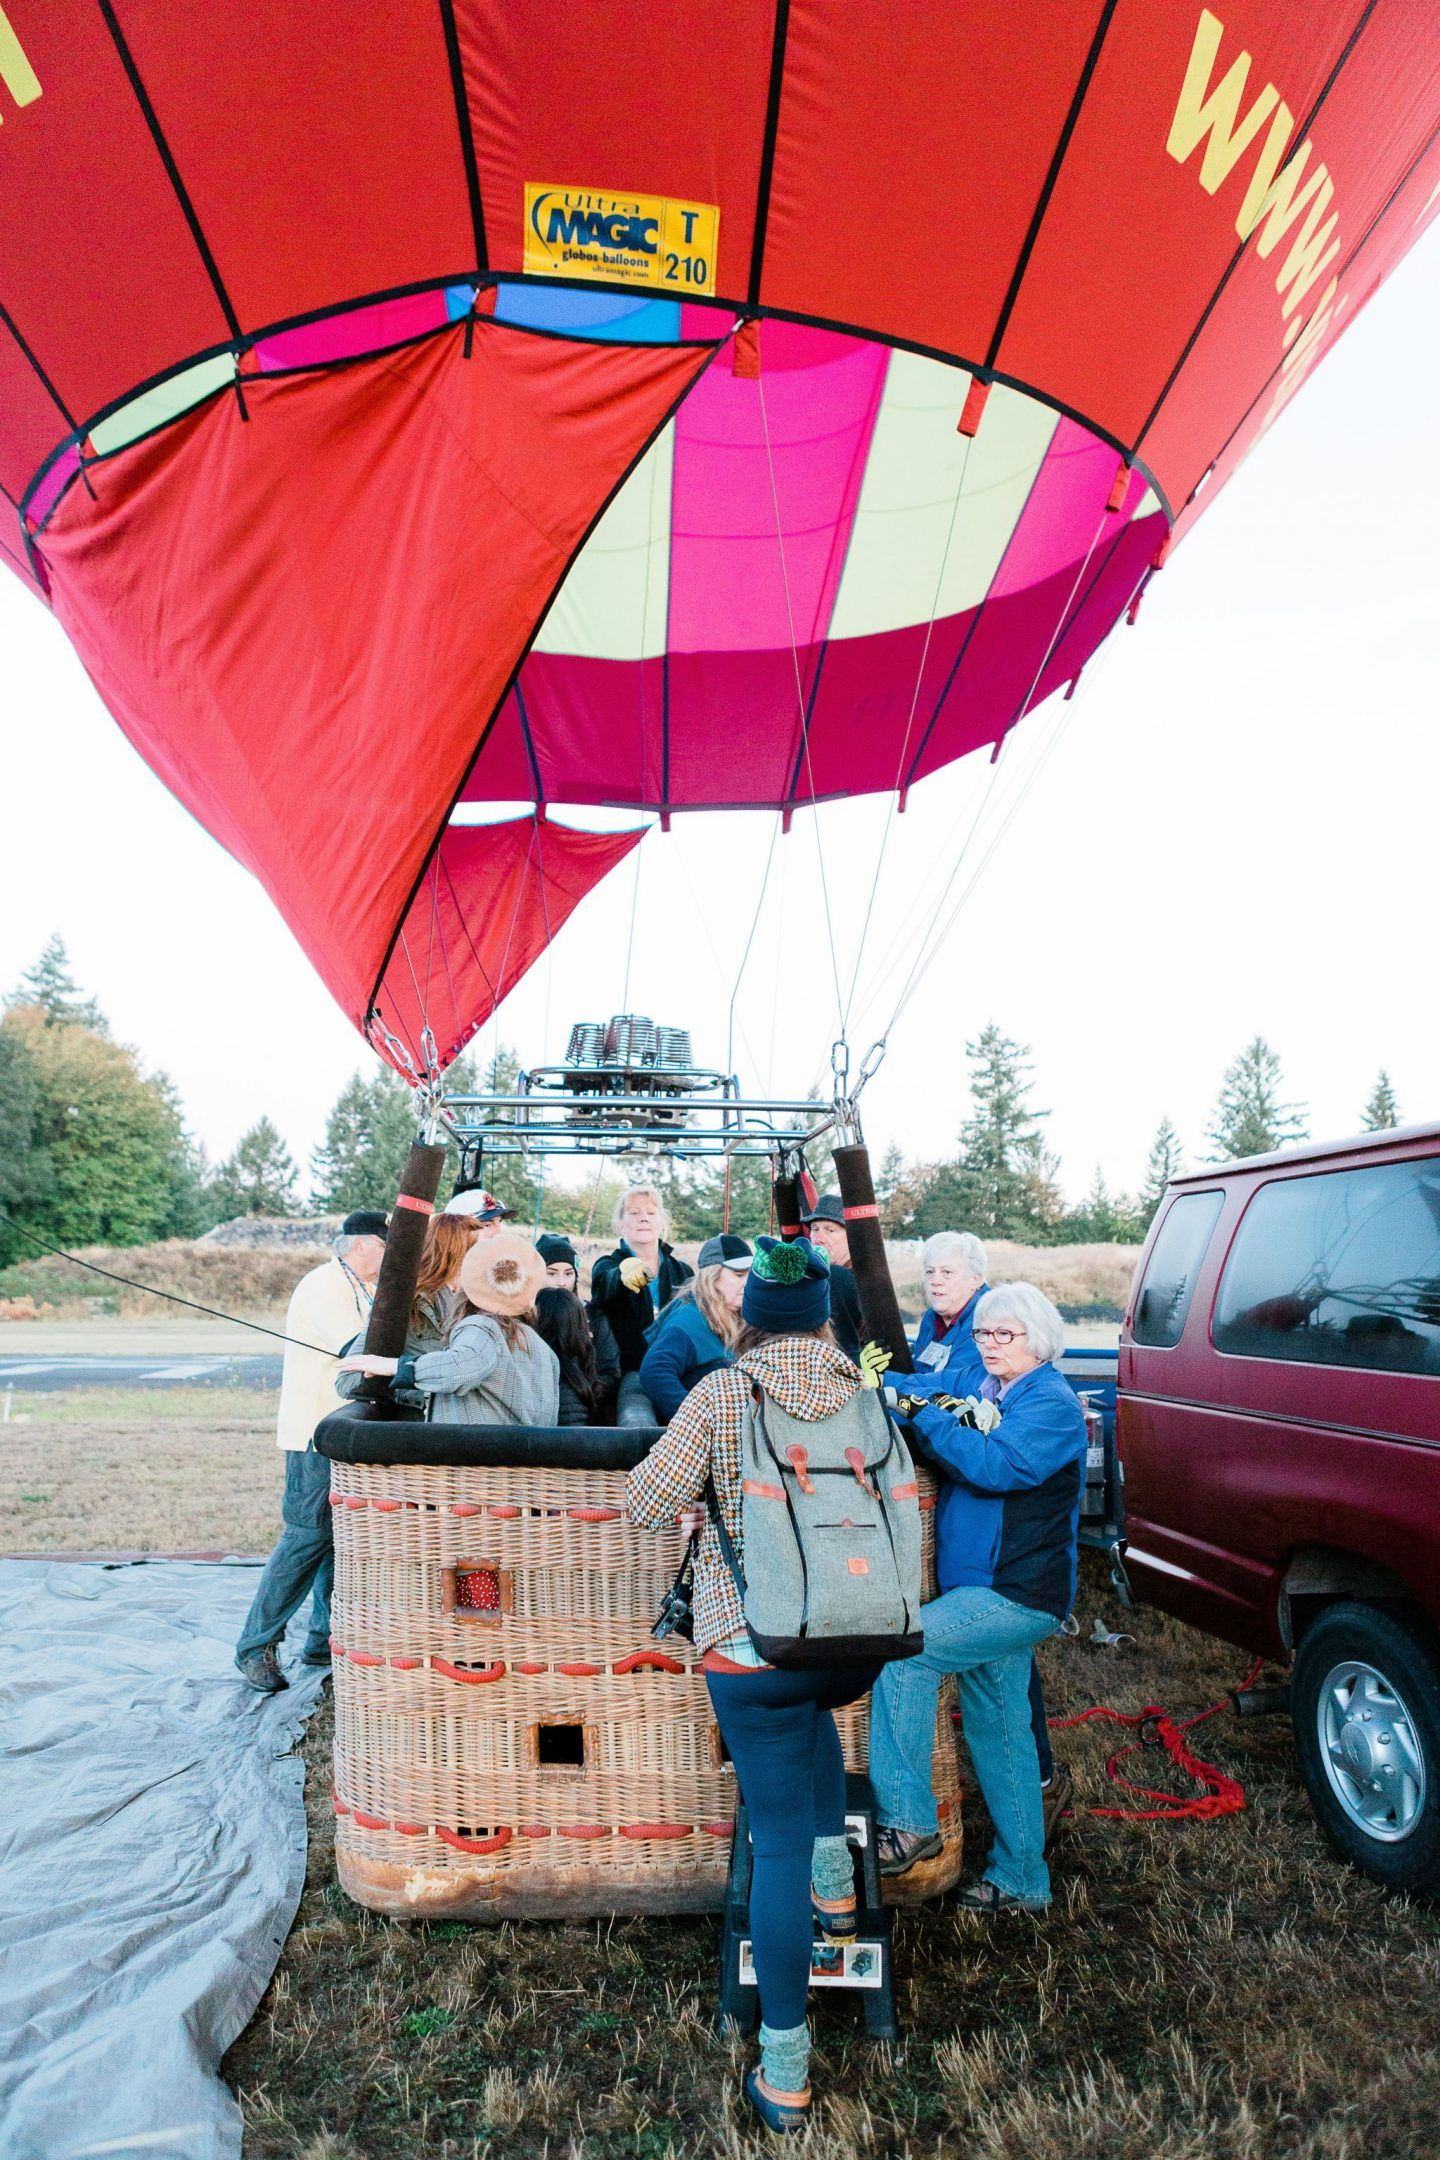 7 unexpected surprises from my first hot air balloon ride | travel